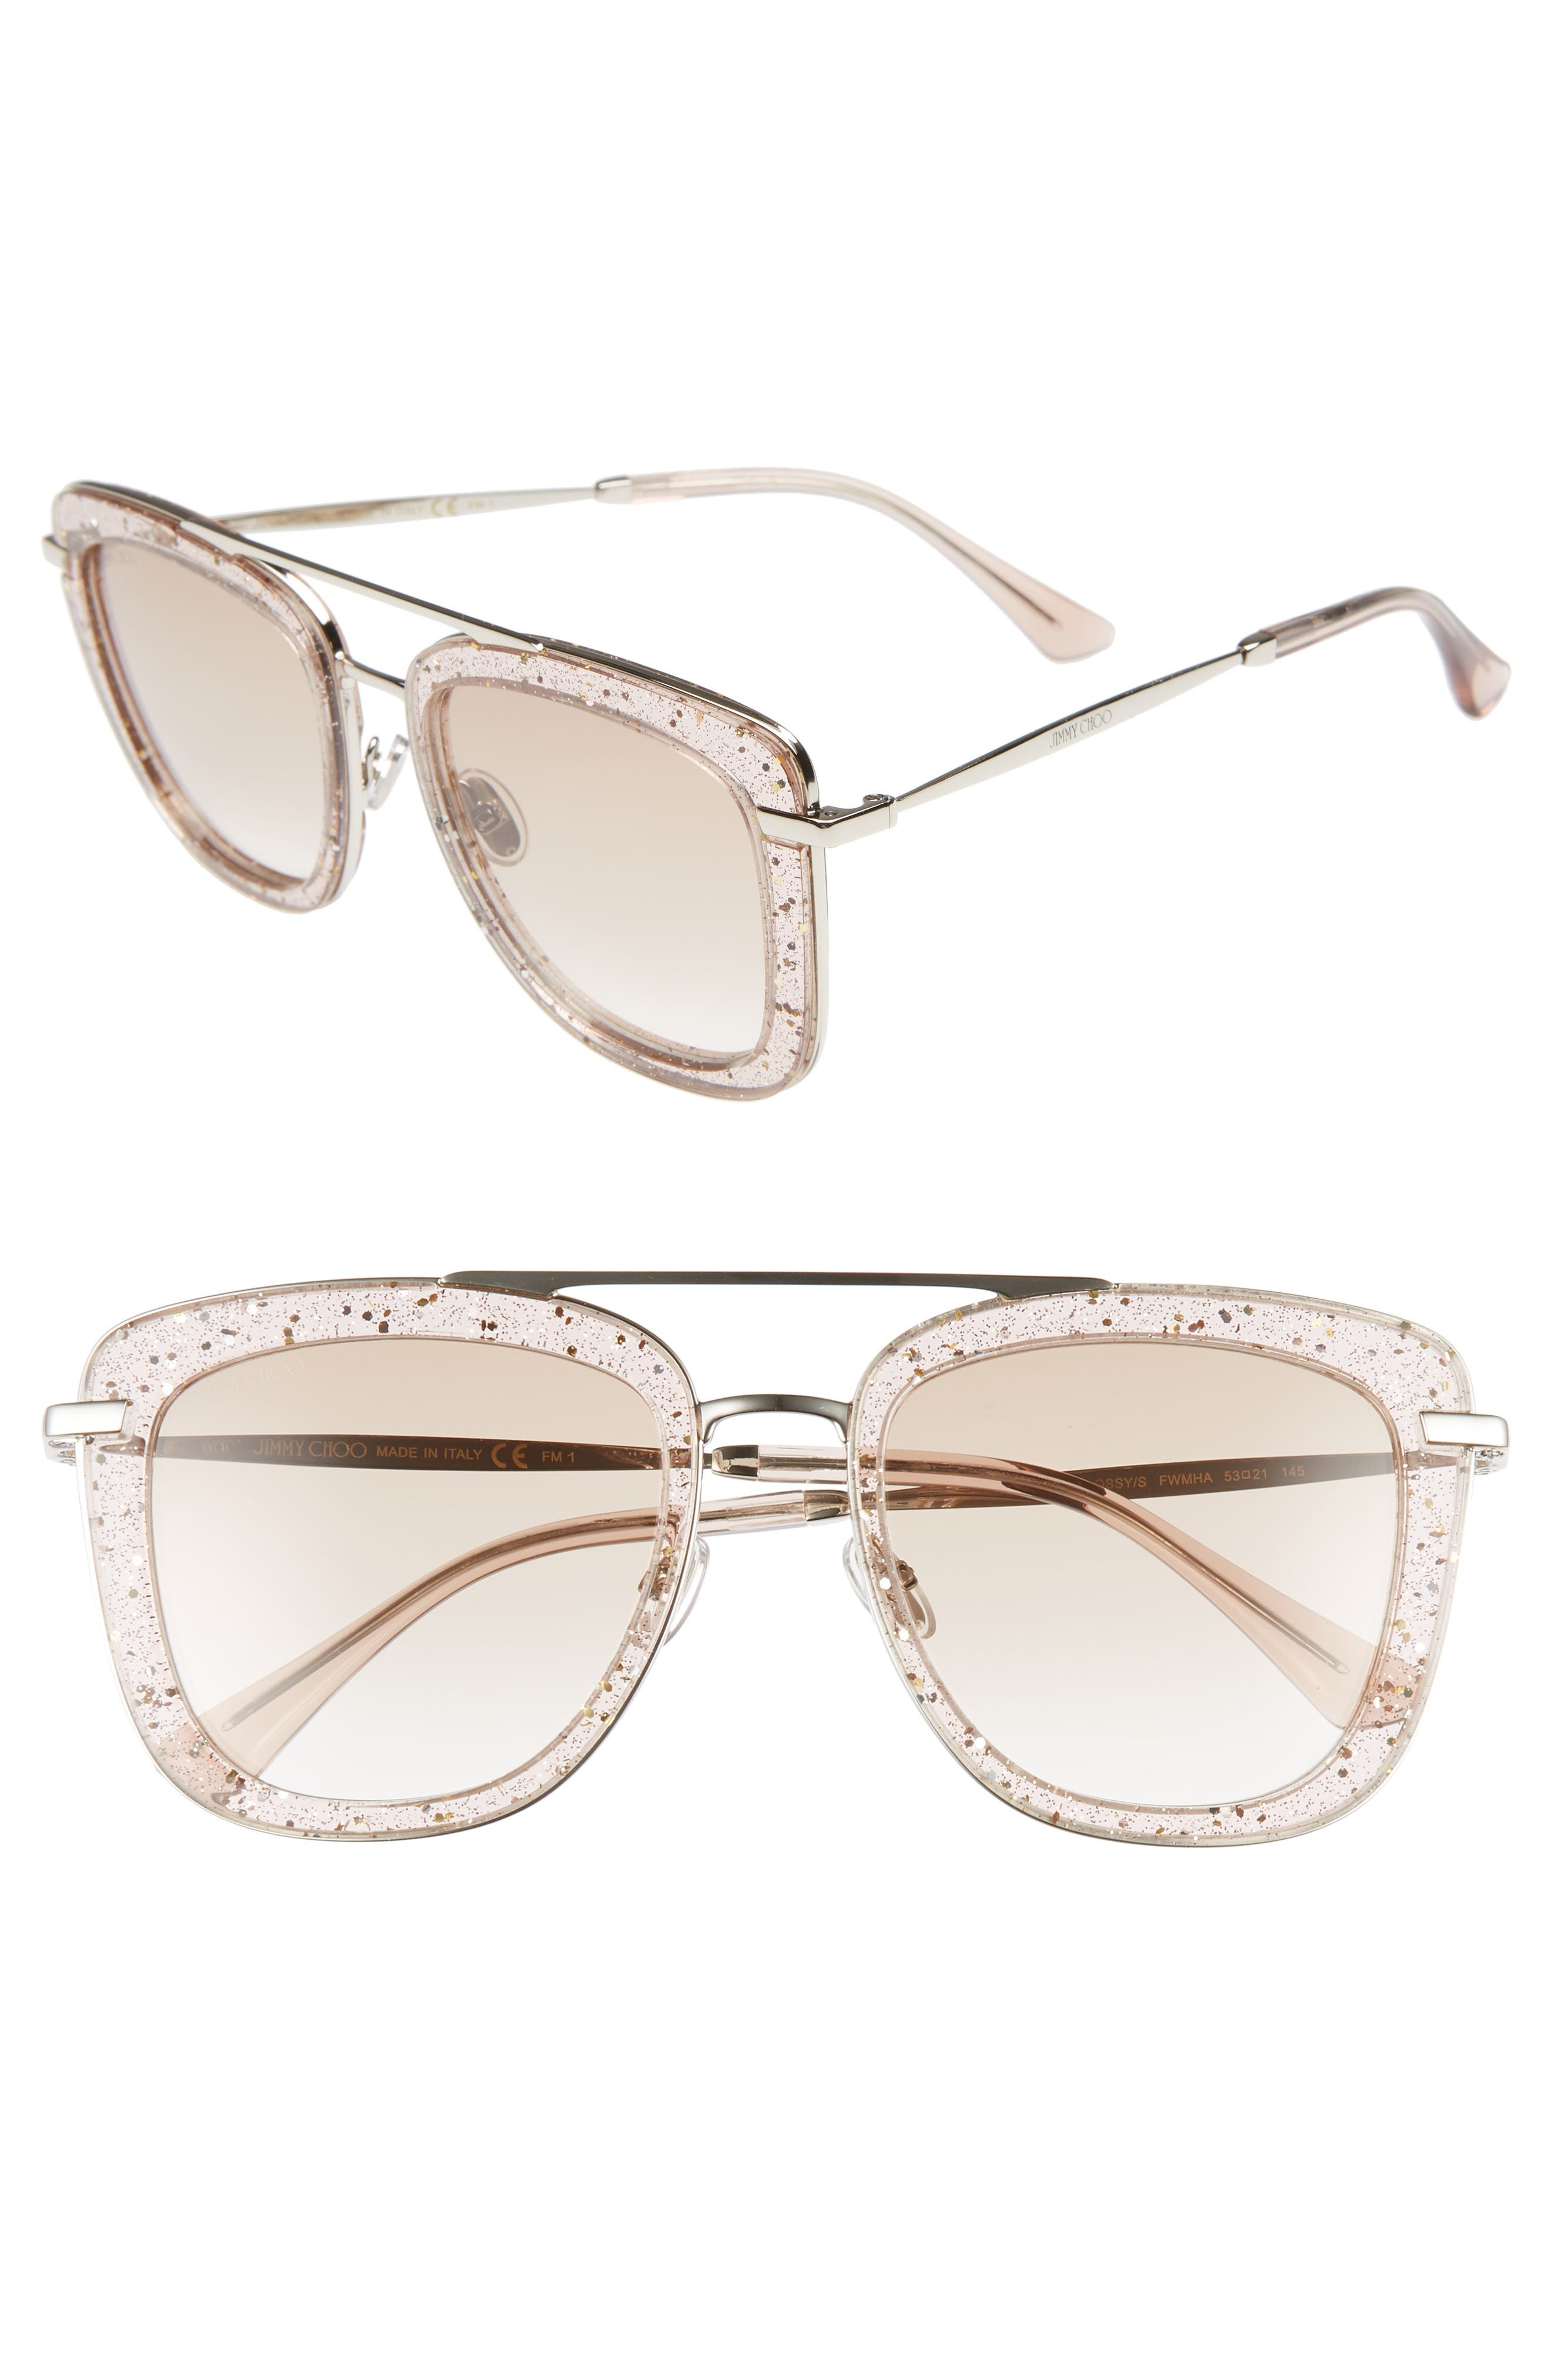 Jimmy Choo Glossy 5m Square Sunglasses - Nude